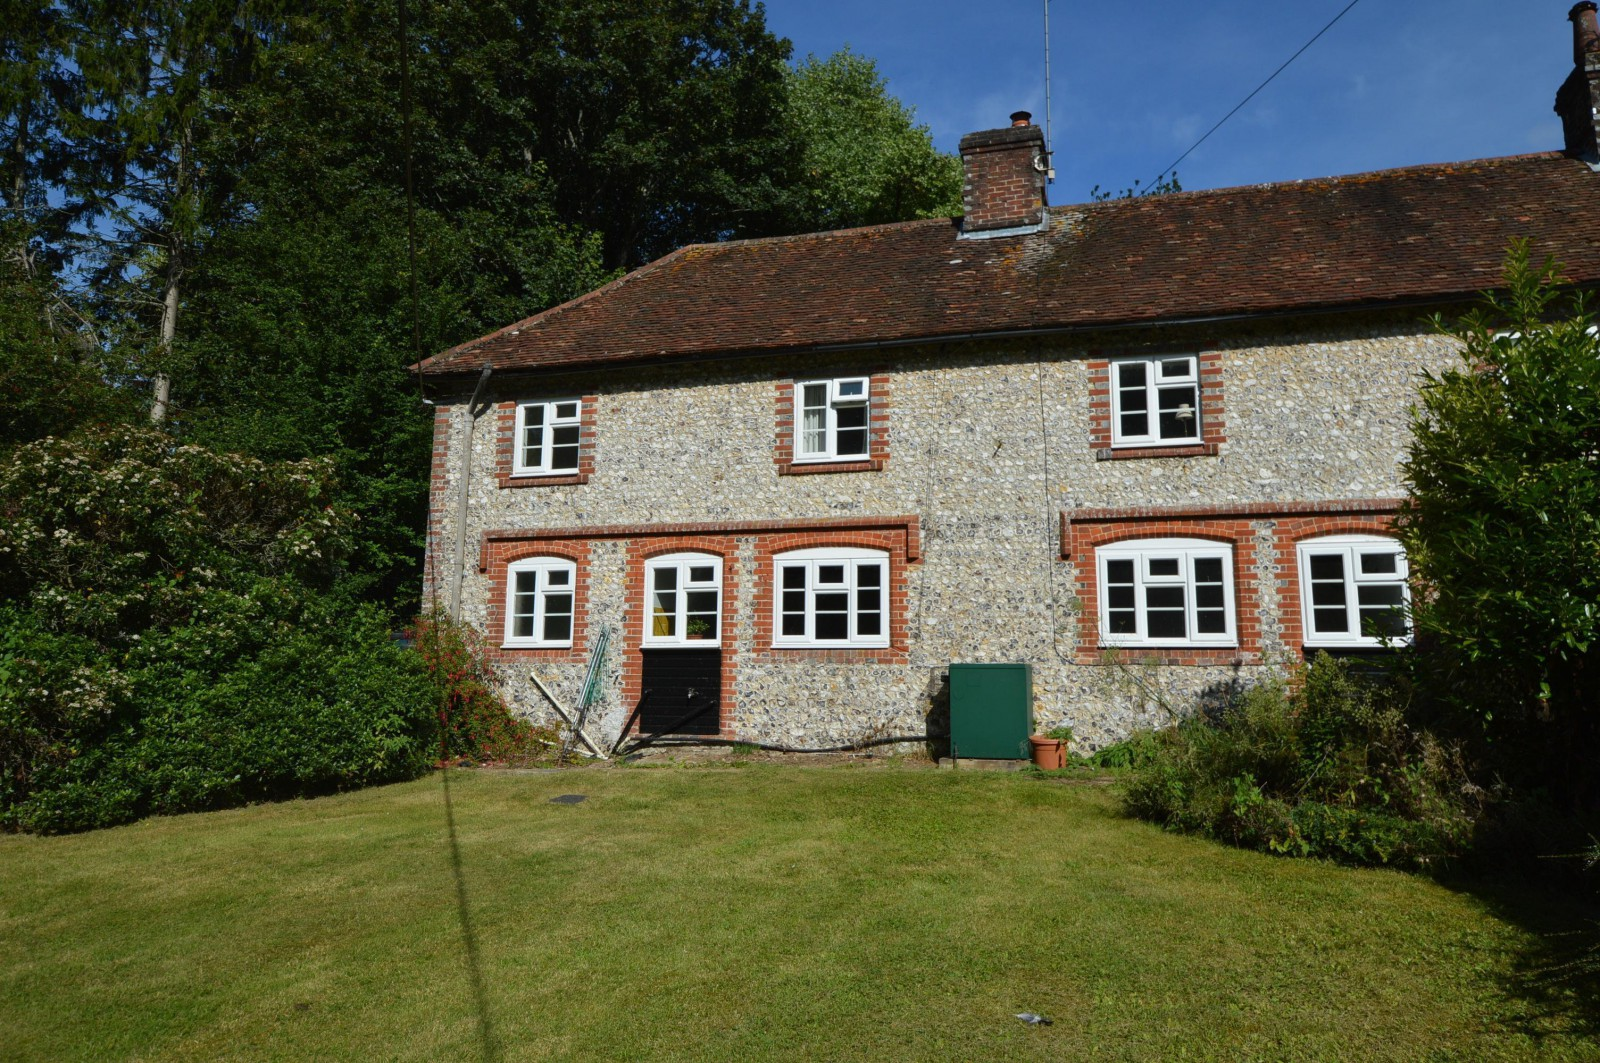 Rear Property to let in West Meon (Main)